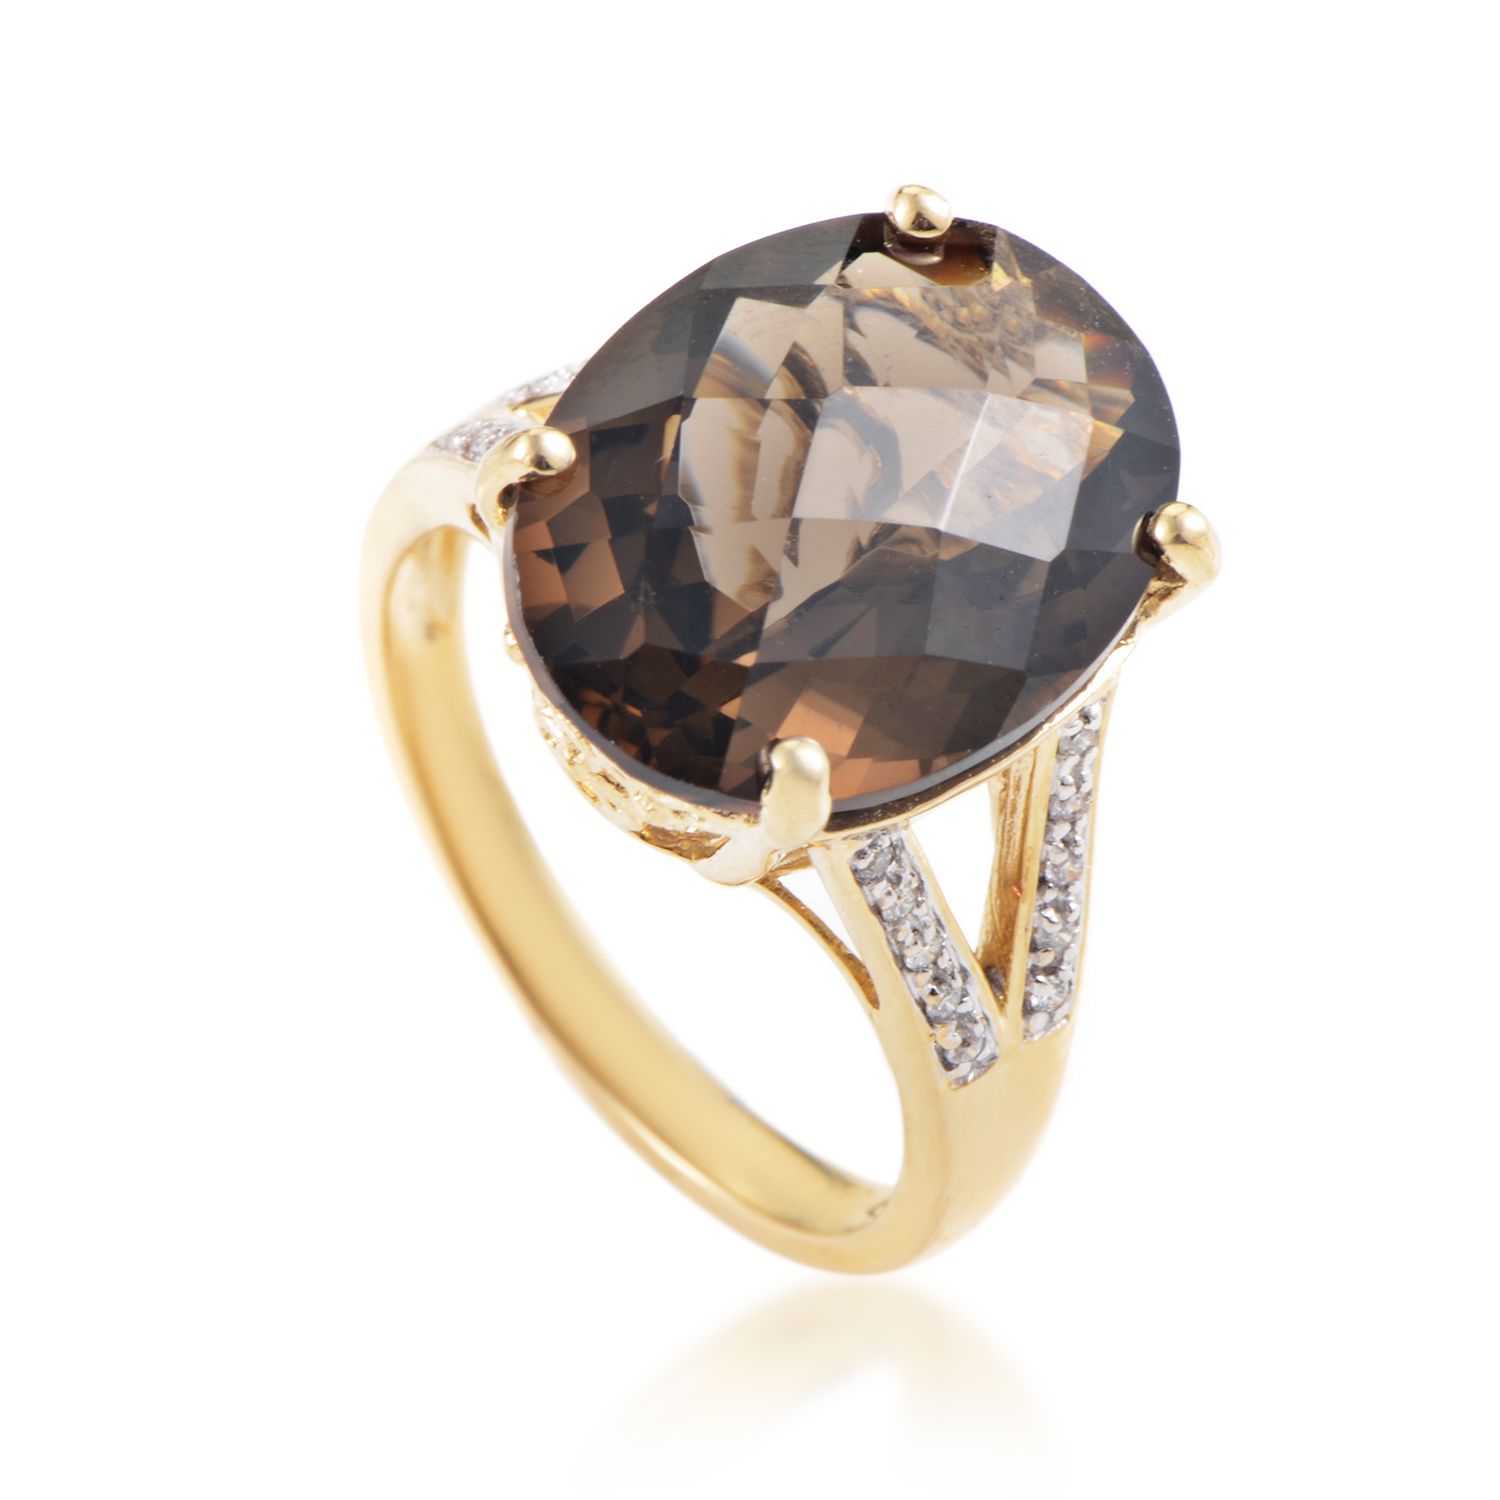 Women's 14K Yellow Gold Diamond & Smoky Quartz Ring RC4-10063YQS